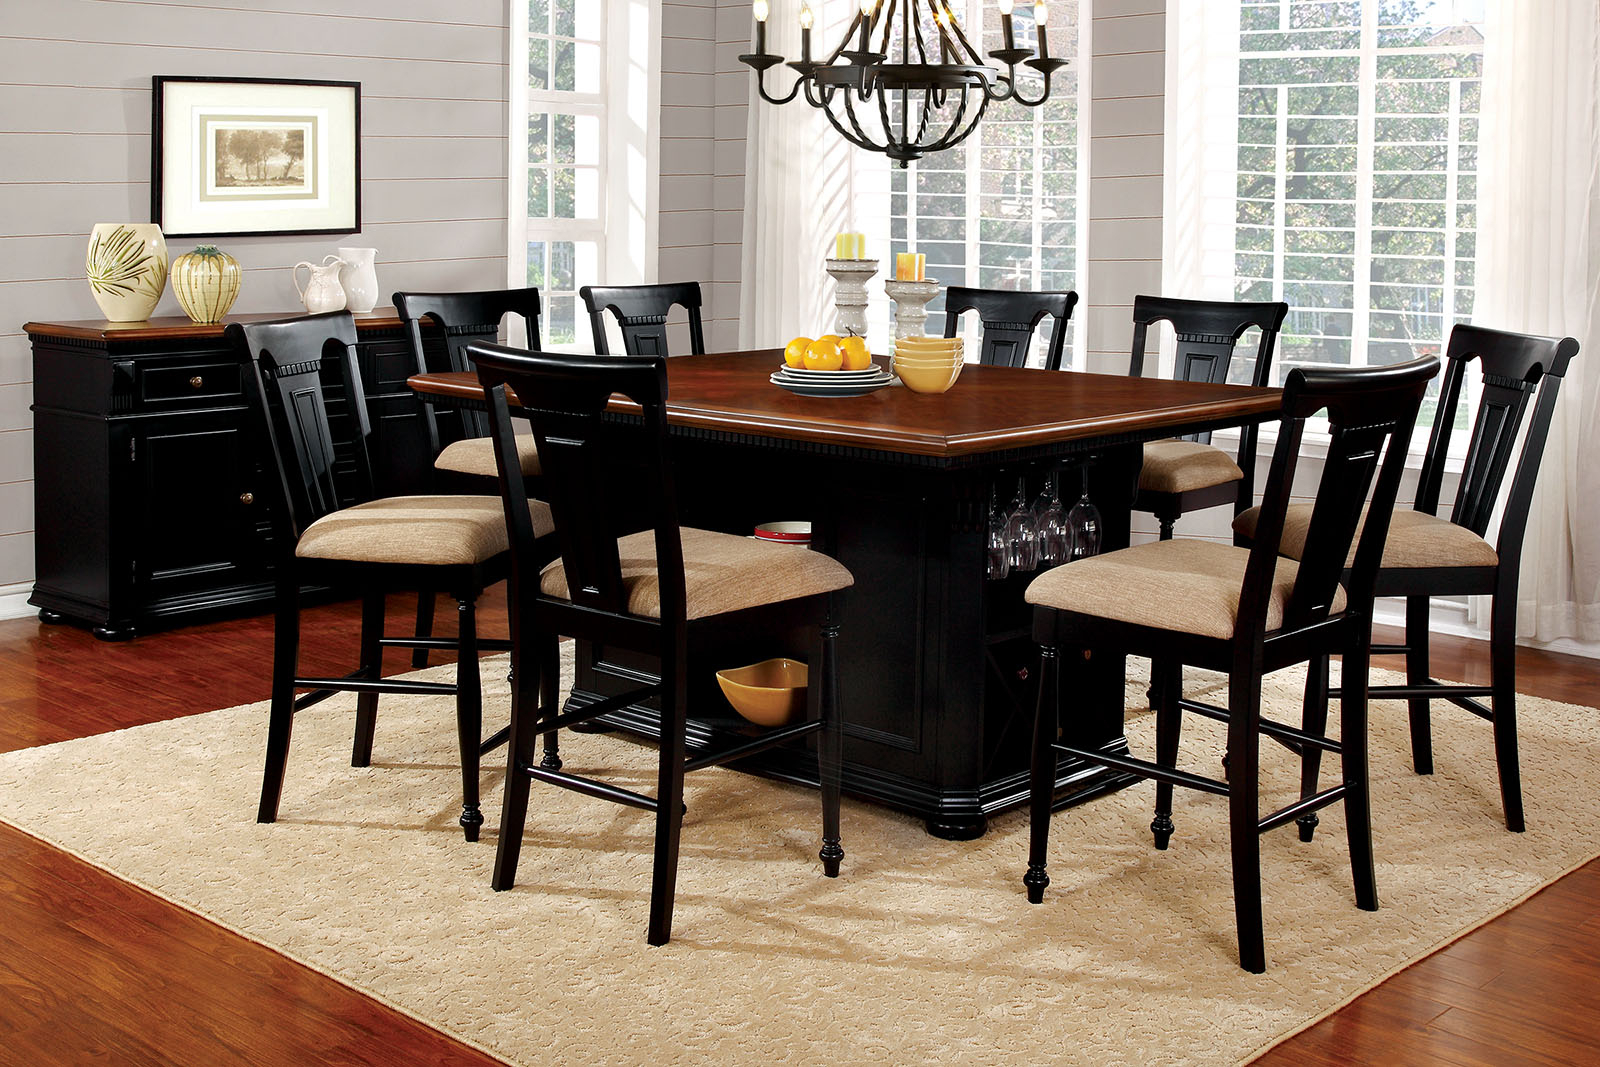 Counter Height Dining Table And Chairs Aspiration 9Pcs Throughout Most Up To Date Transitional 6 Seating Casual Dining Tables (Gallery 24 of 30)